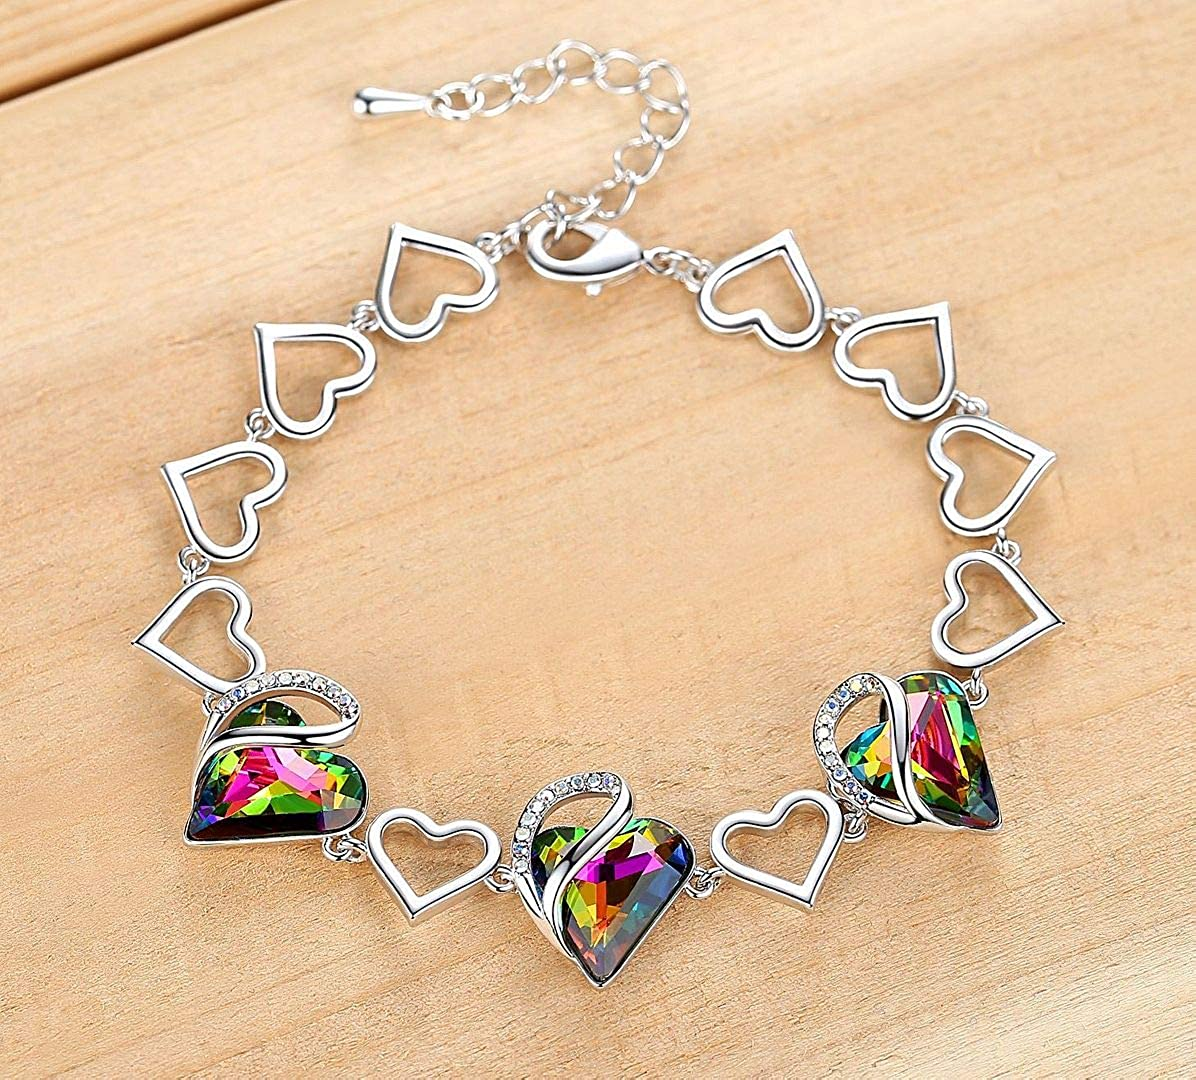 Silver-Tone Womens Gifts 7 with 2 Extender Leafael Infinity Love Heart Link Bracelet with Birthstone Crystal